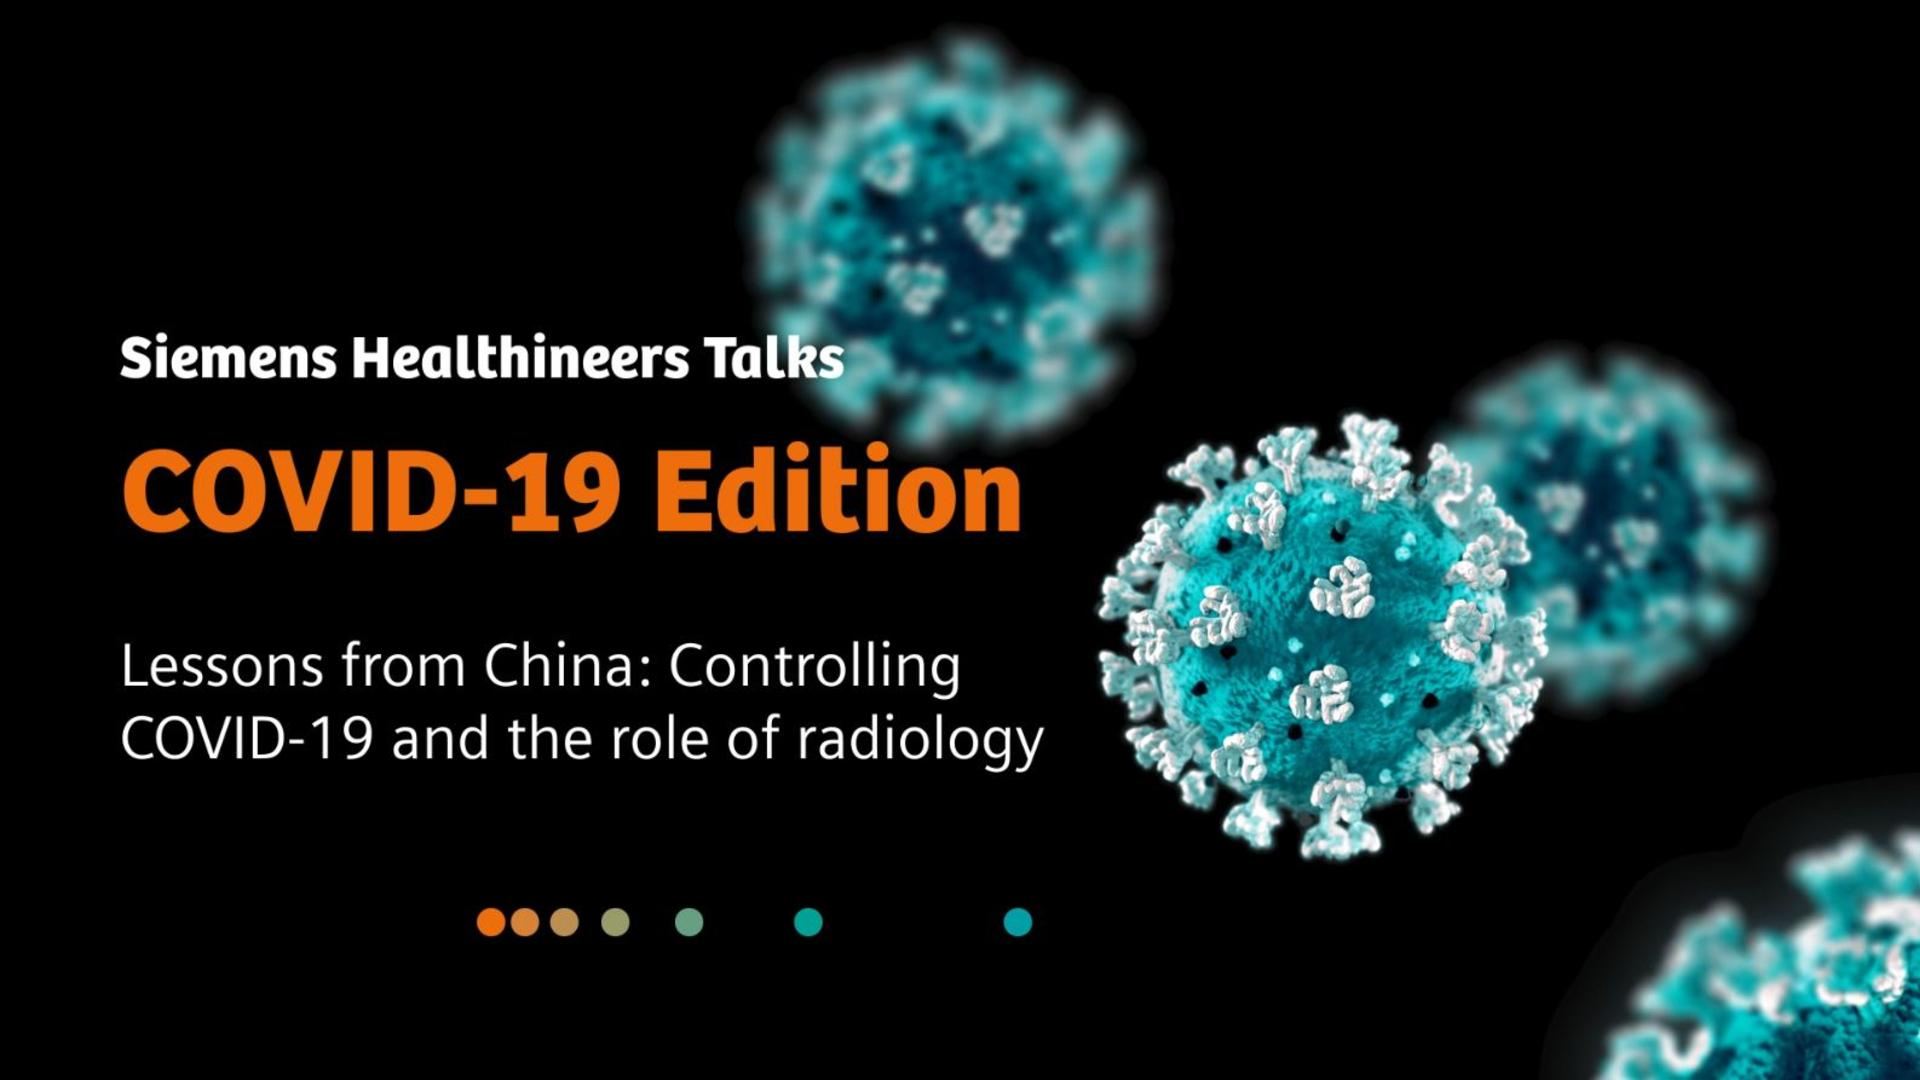 COVID-19 webcast on lessons from China: Controlling COVID-19 and the role of radiology